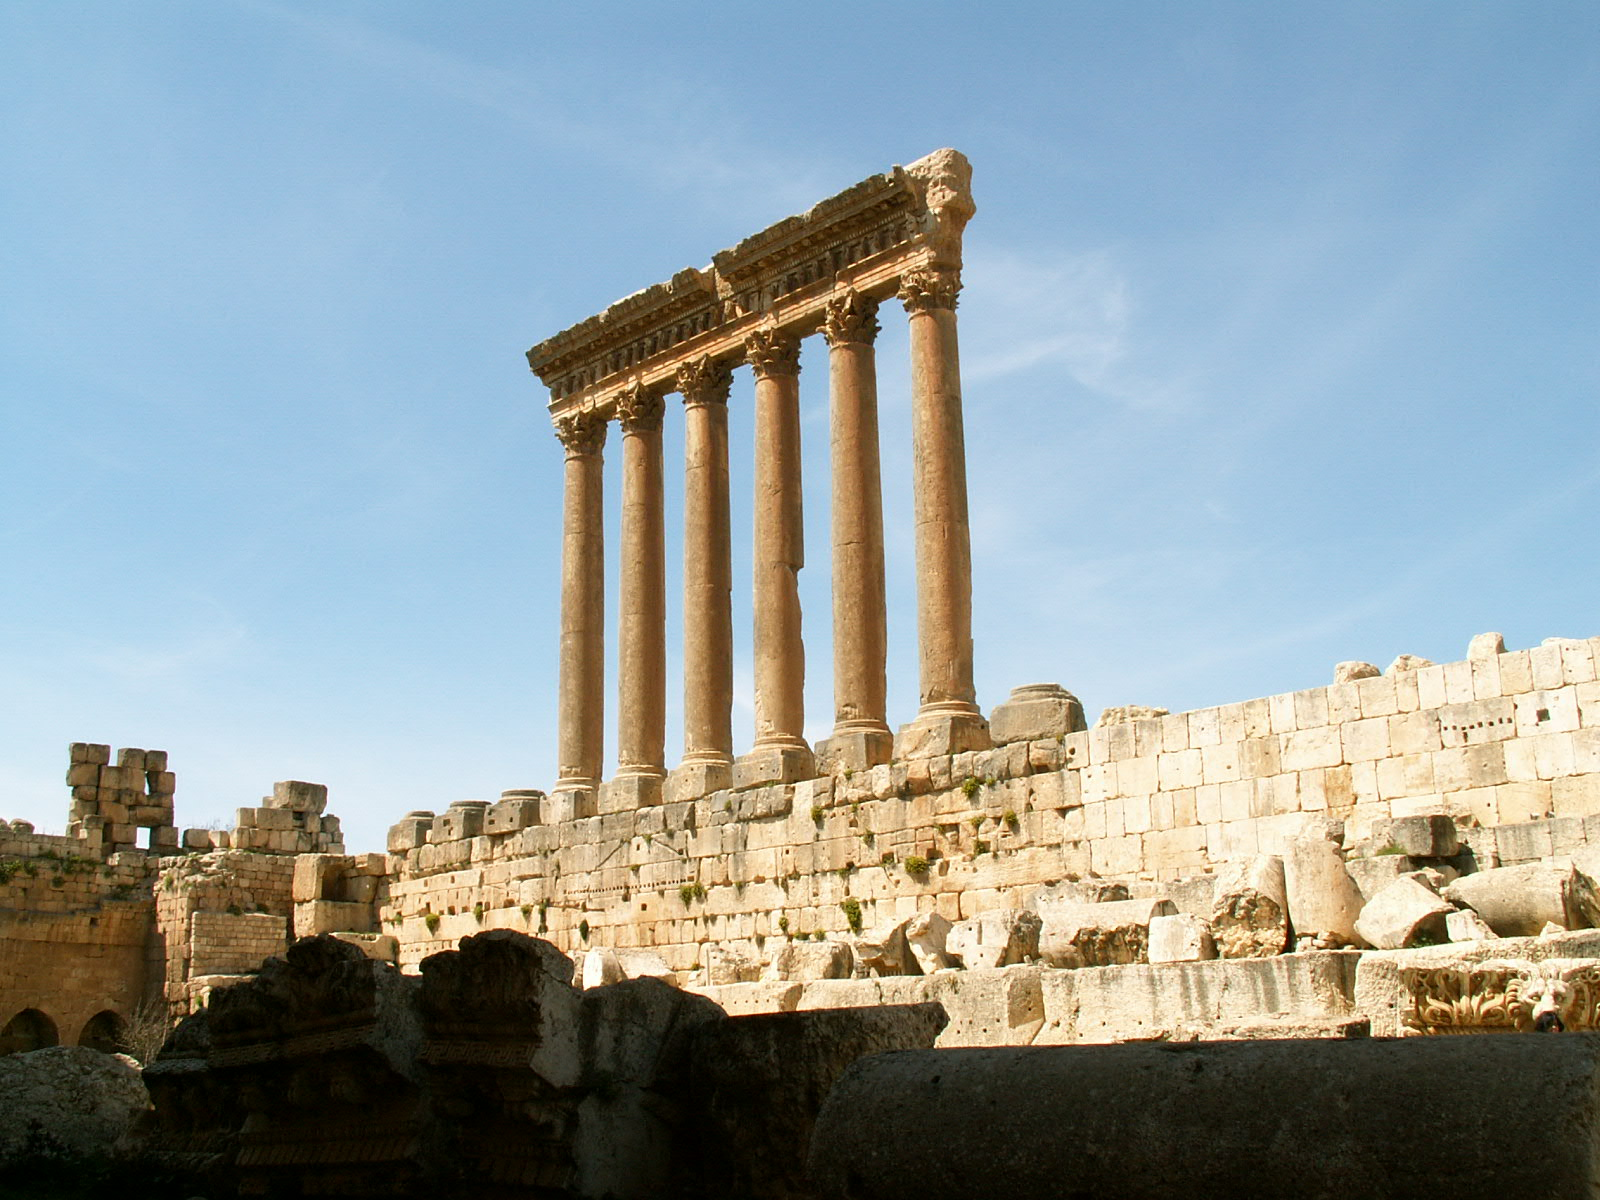 Baalbek Roman Construction at Ancient Site